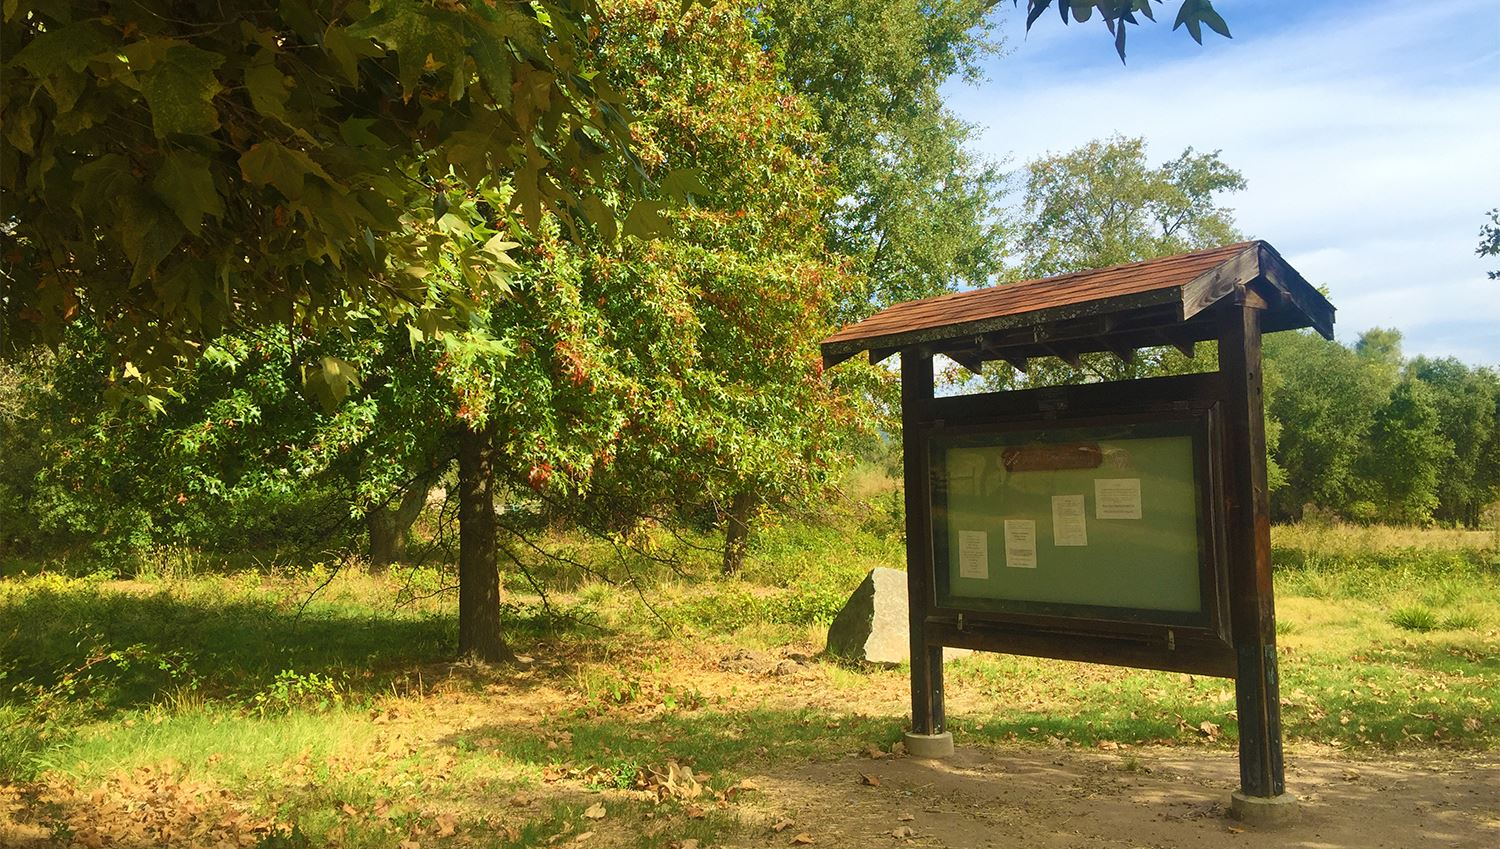 Photograph of a kiosk and foliage at Traylor Ranch